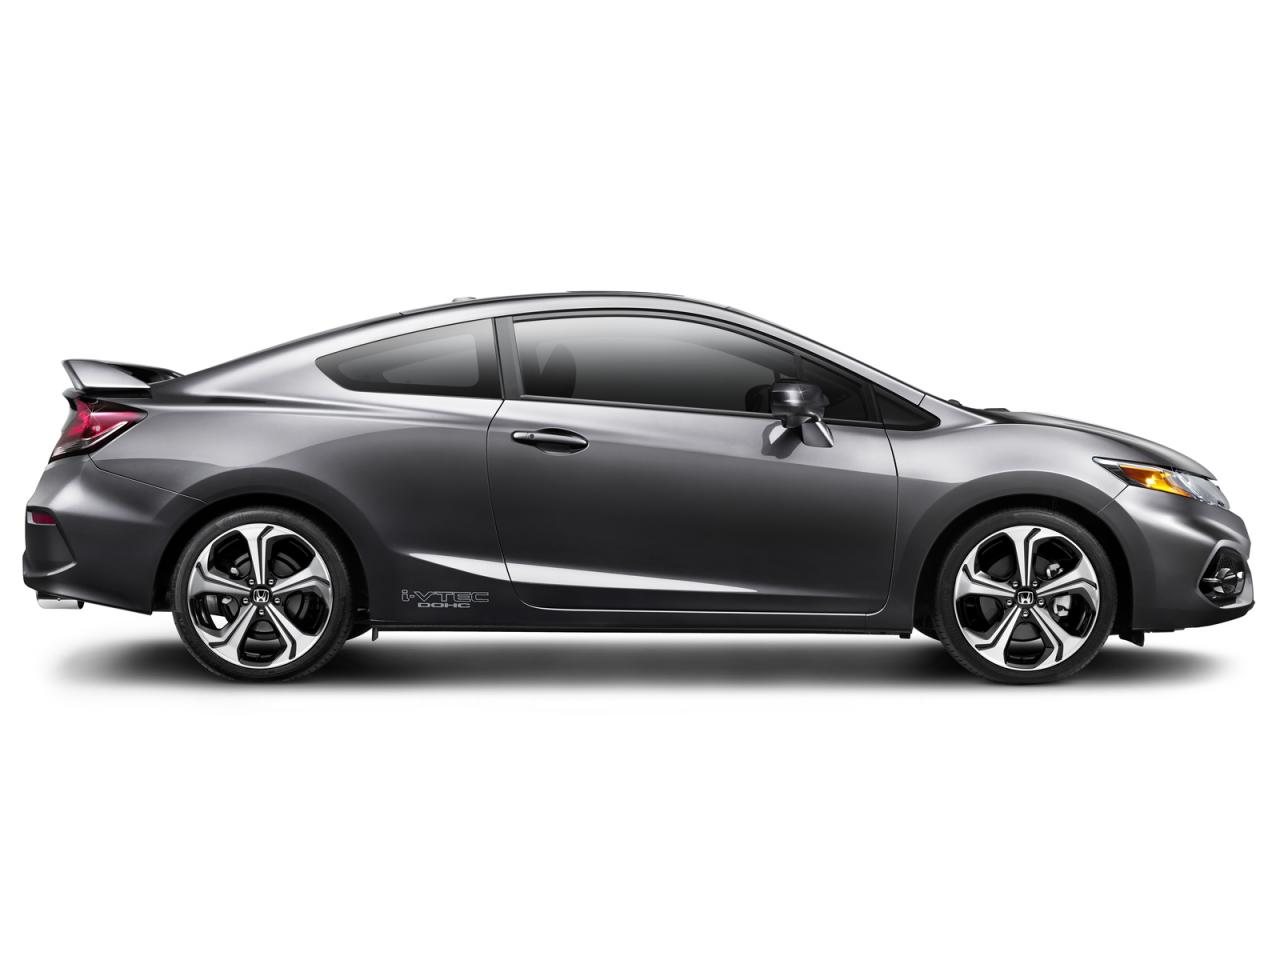 2015 honda civic si priced from 22 890 speed carz. Black Bedroom Furniture Sets. Home Design Ideas